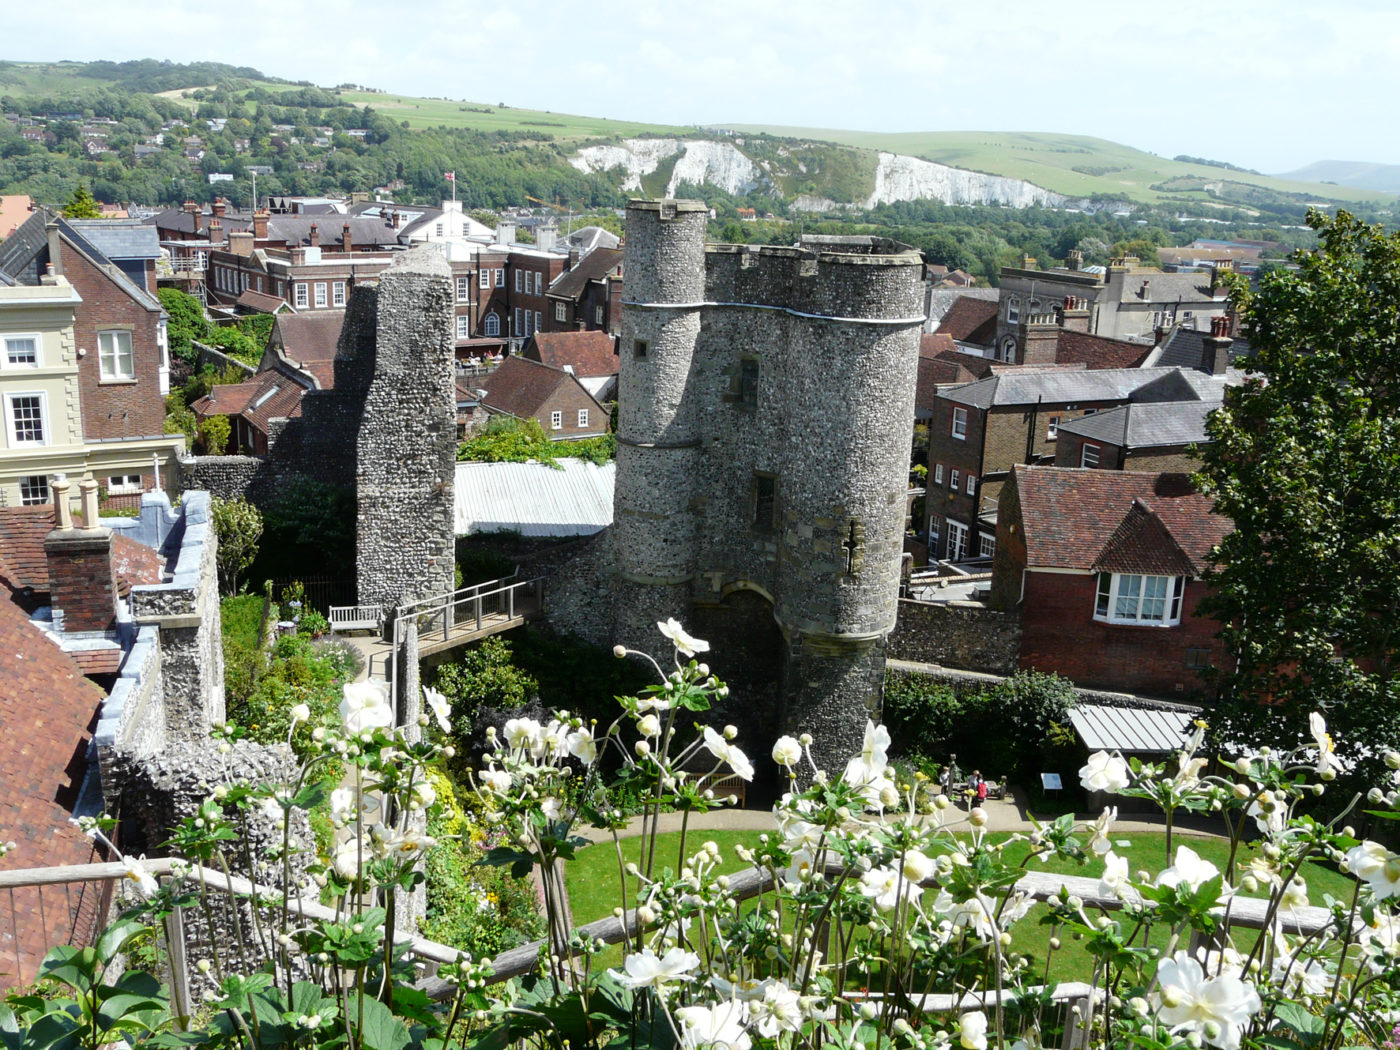 Lewes Castle view of exterior